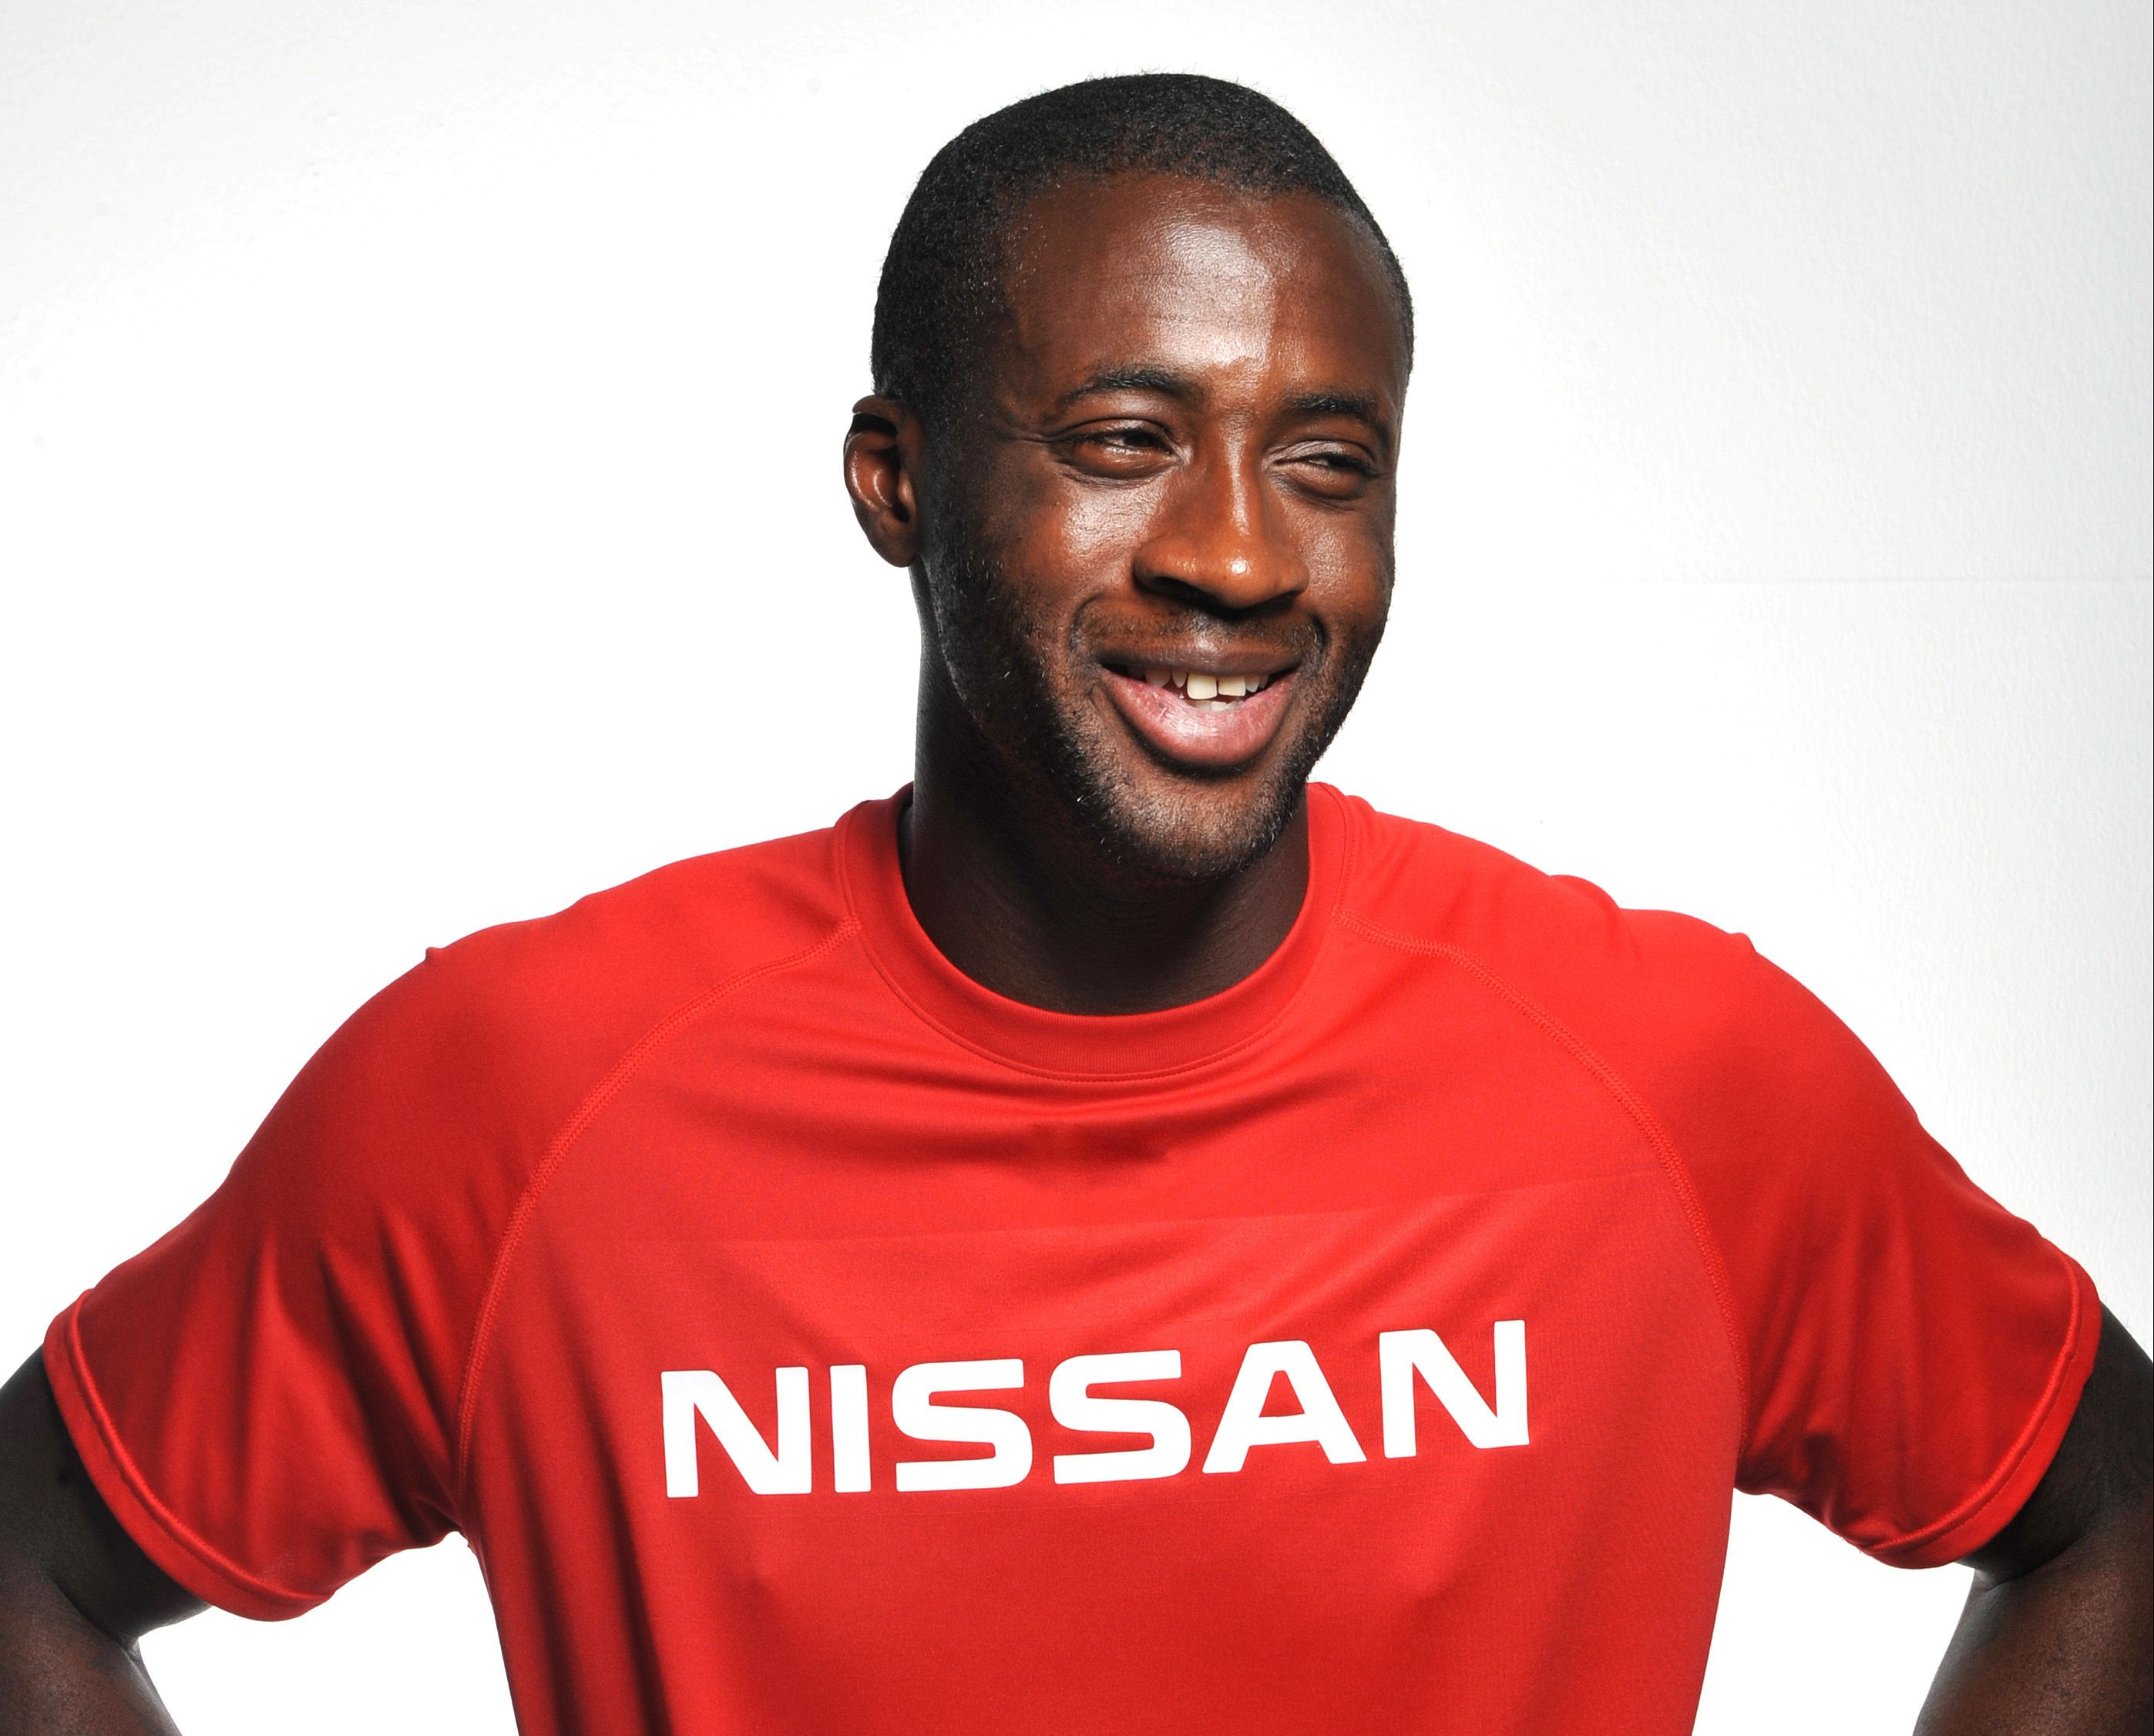 Nissan appoints Yaya Toure as its new global ambassador